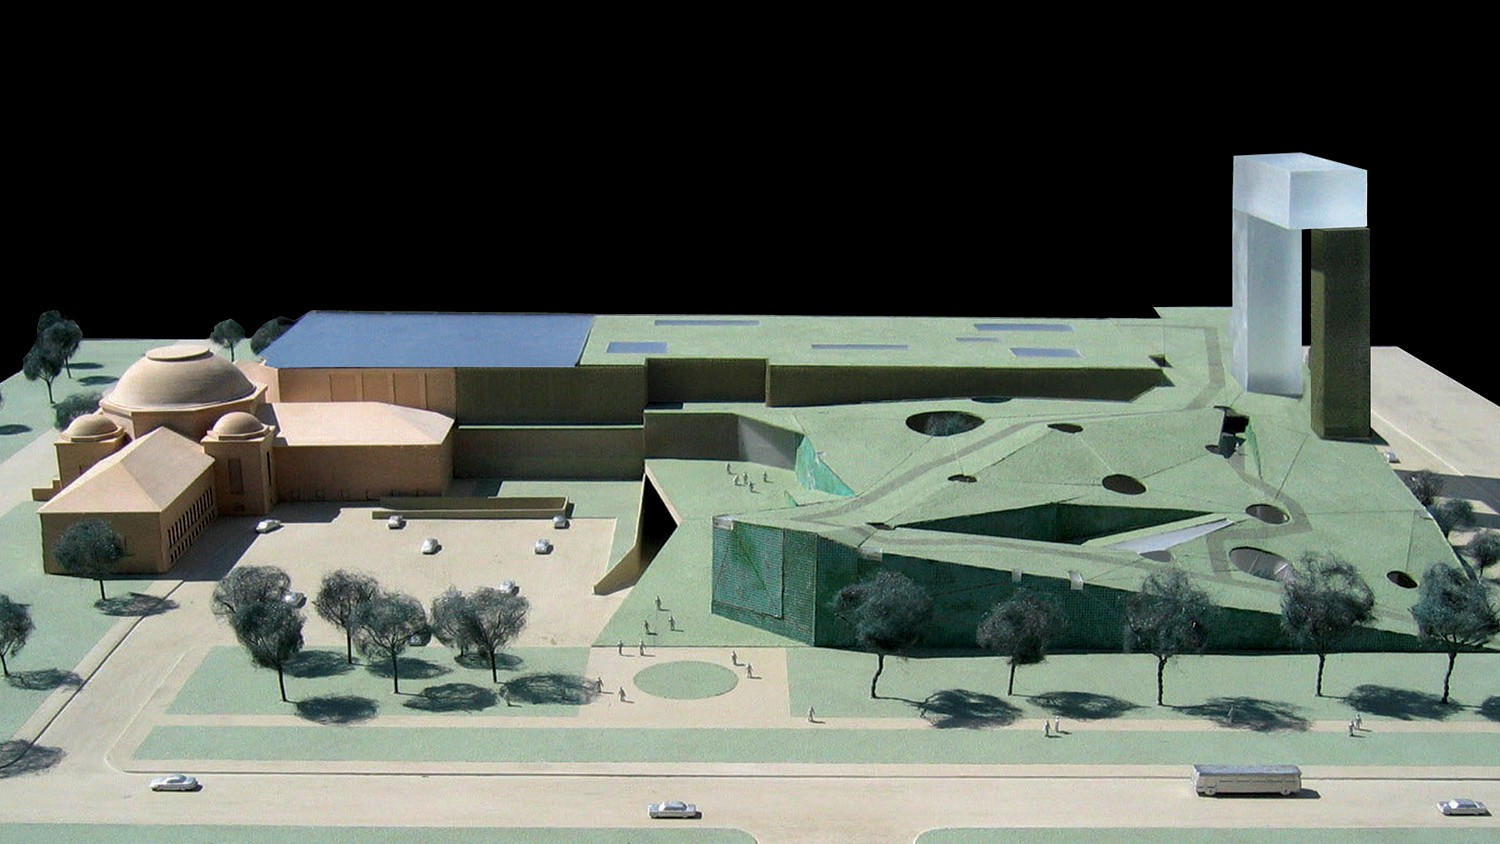 https://stevenholl.sfo2.digitaloceanspaces.com/uploads/projects/project-images/StevenHollArchitects_LANH_model2_WH.jpg